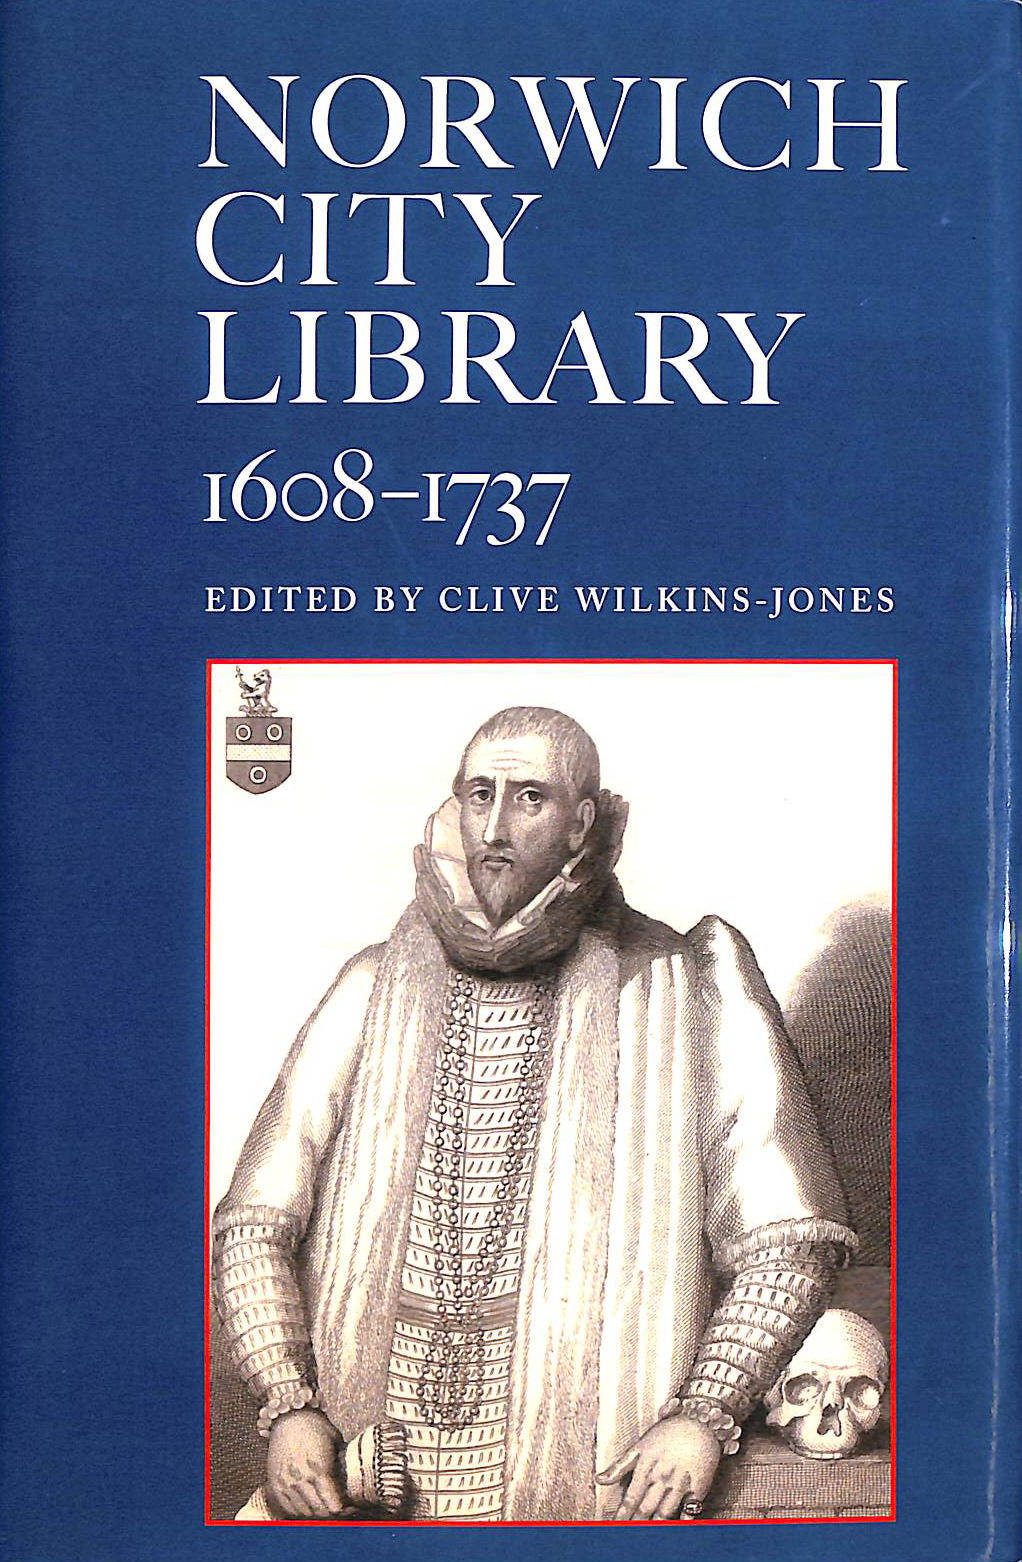 Image for Norwich City Library 1608-1737: NRS Annual Publication v. 72